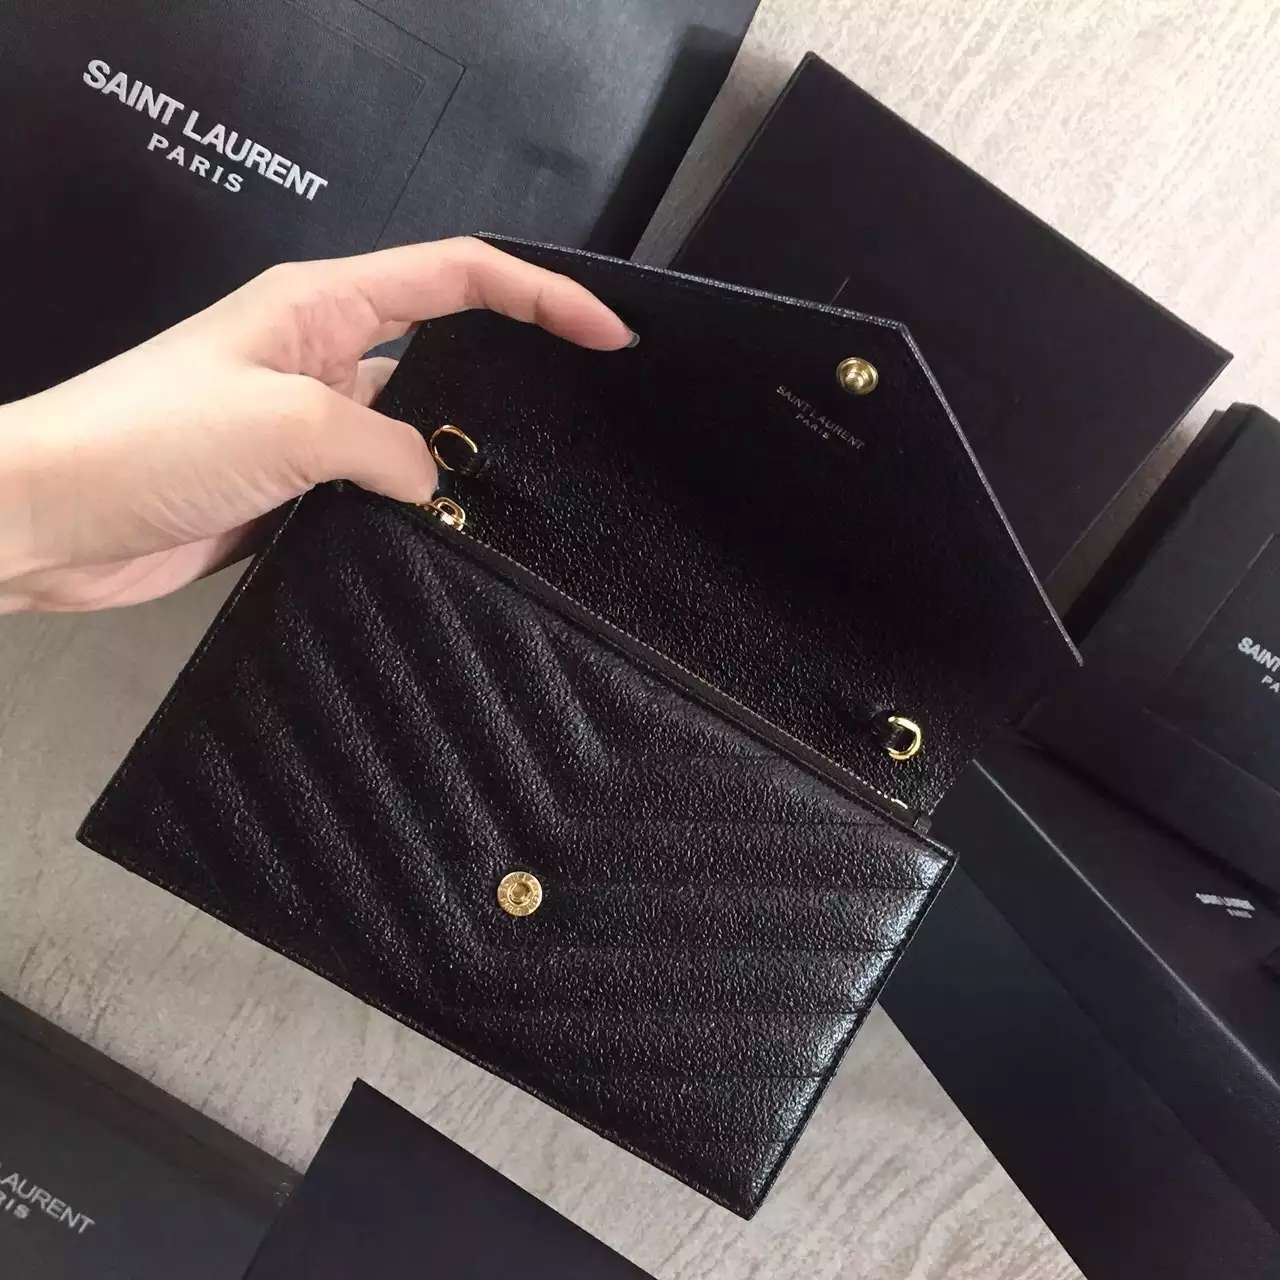 2016 Cheap YSL Out Sale with Free Shipping-Saint Laurent Monogram Envelope Chain Wallet in Black Grained Matelasse Metallic Leather